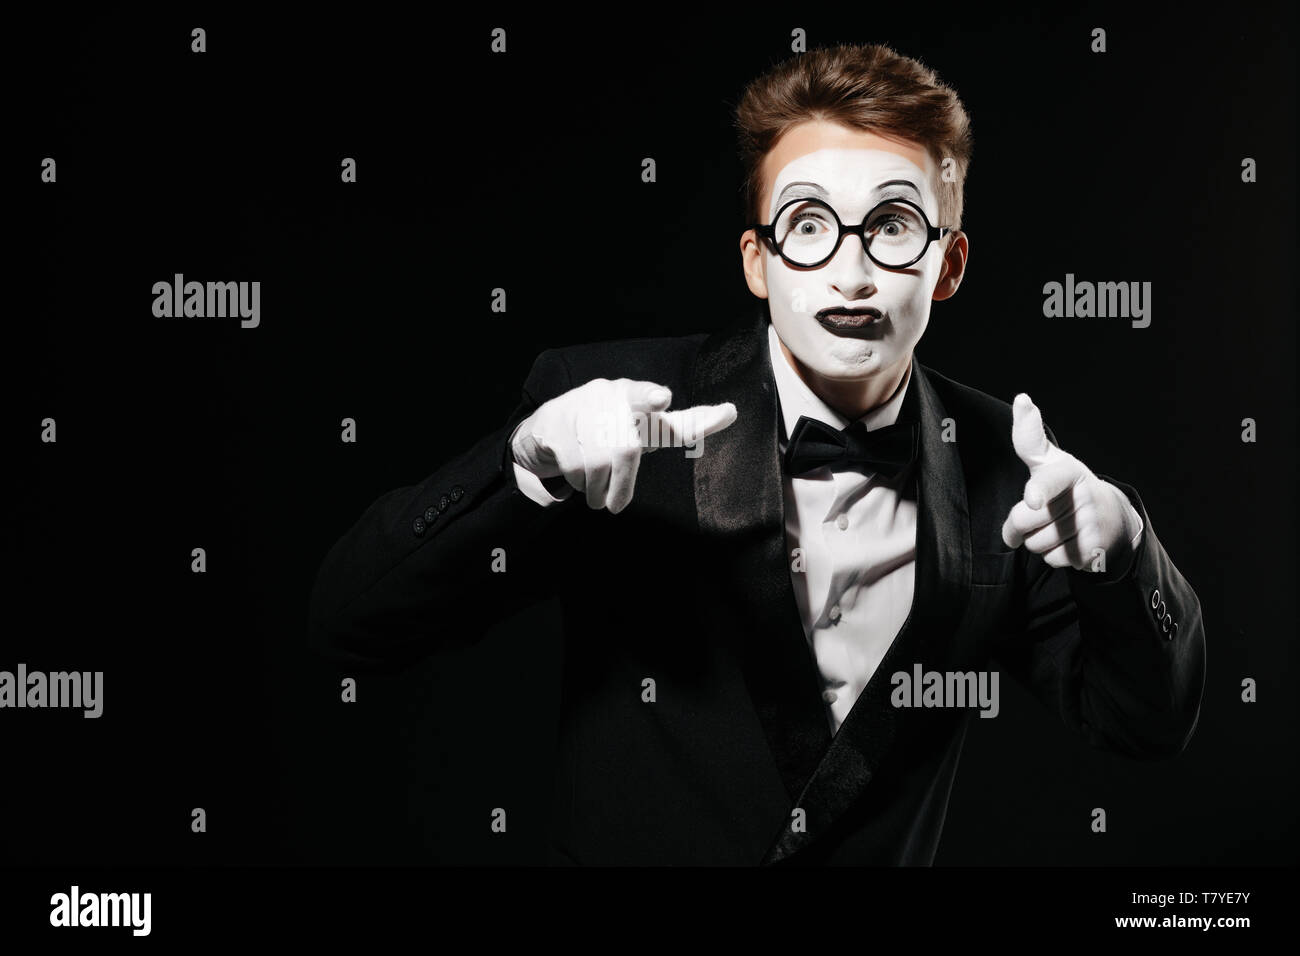 portrait of mime man in tuxedo and glasses points at you on black background - Stock Image